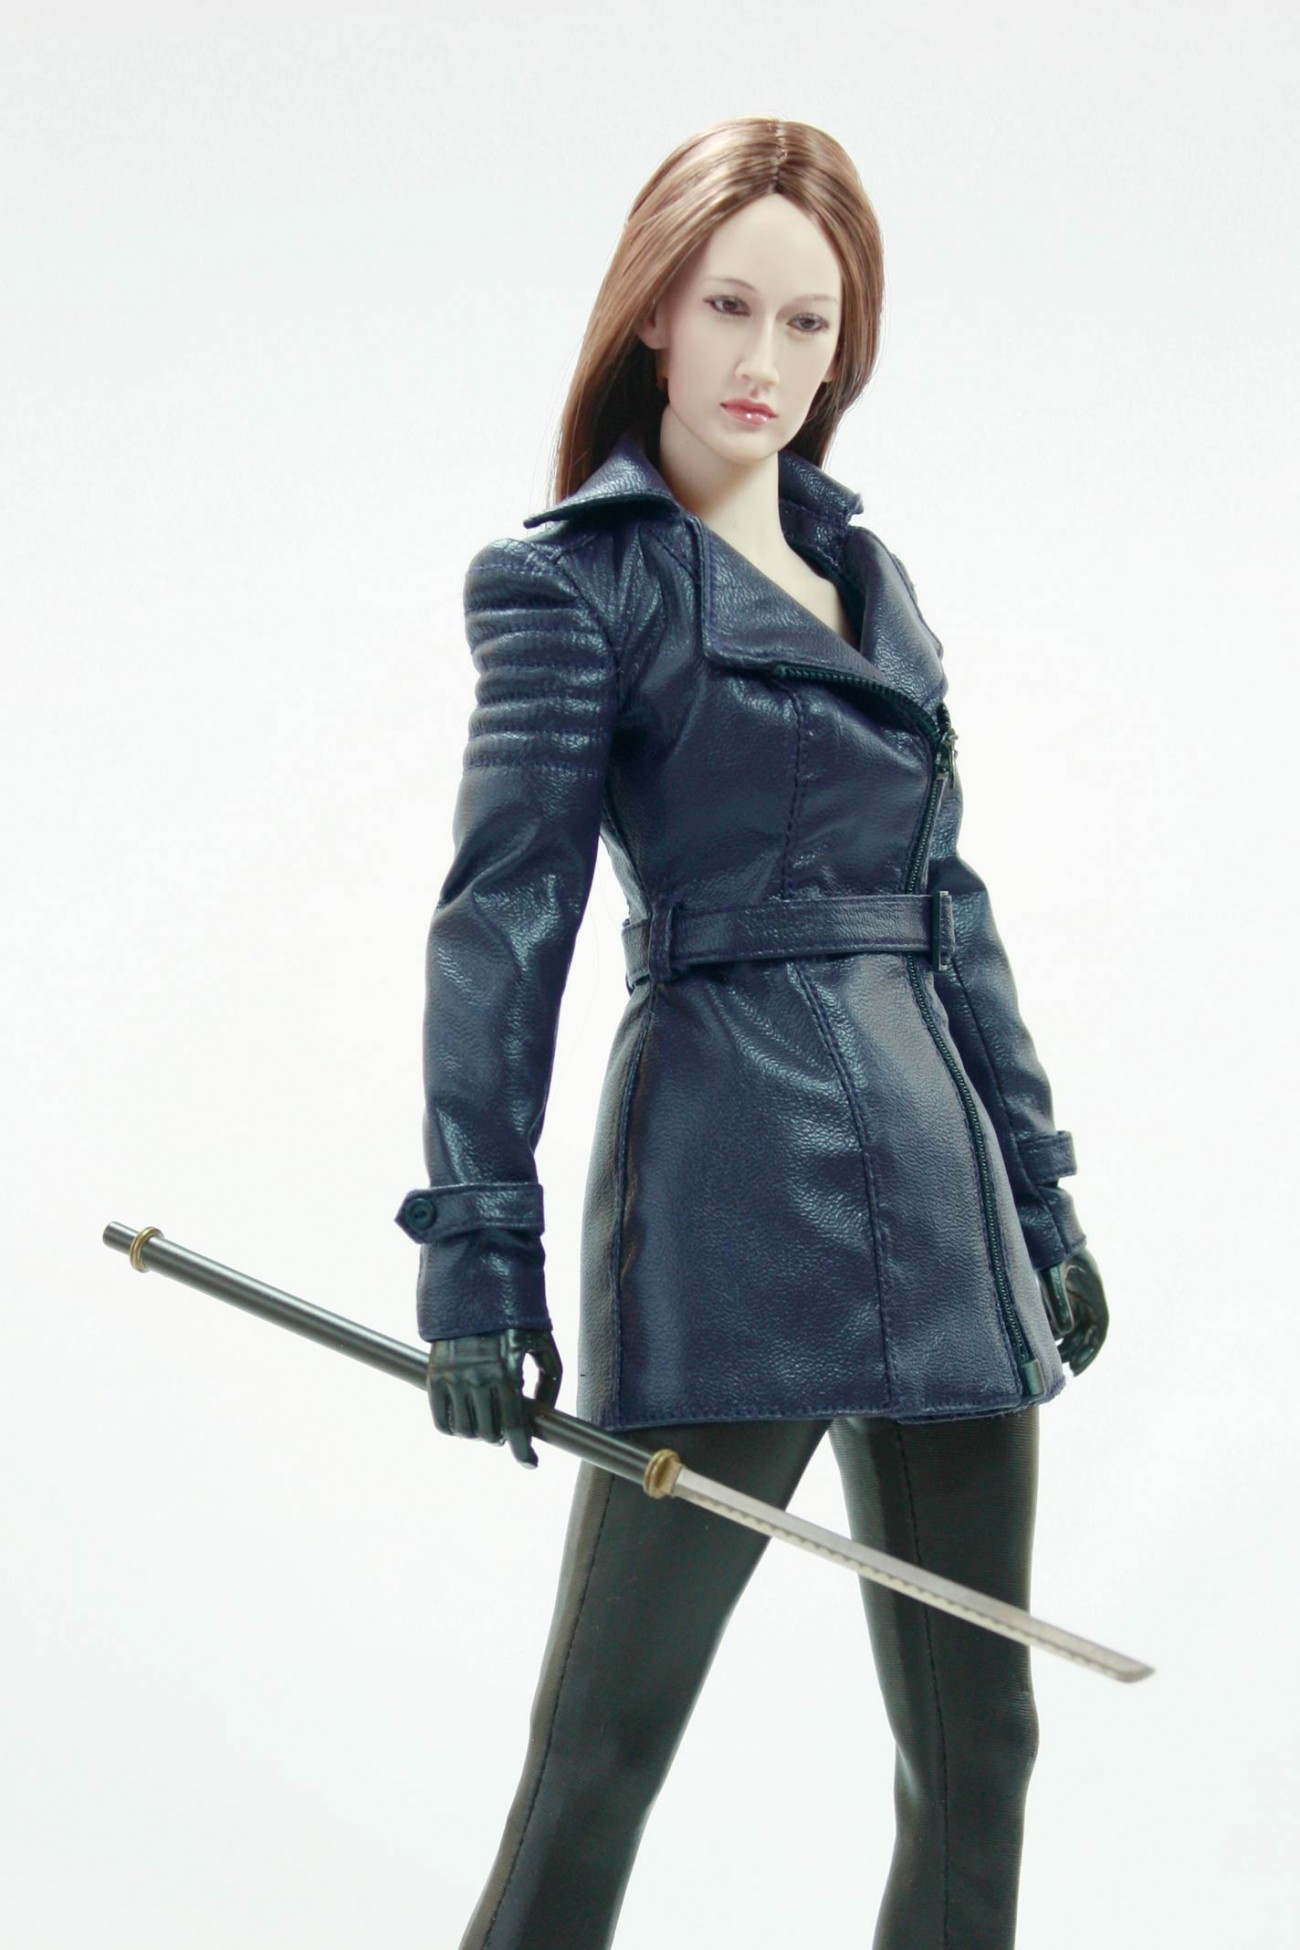 POPTOYS F15-C BLUE (The Nikita female agent leather suit